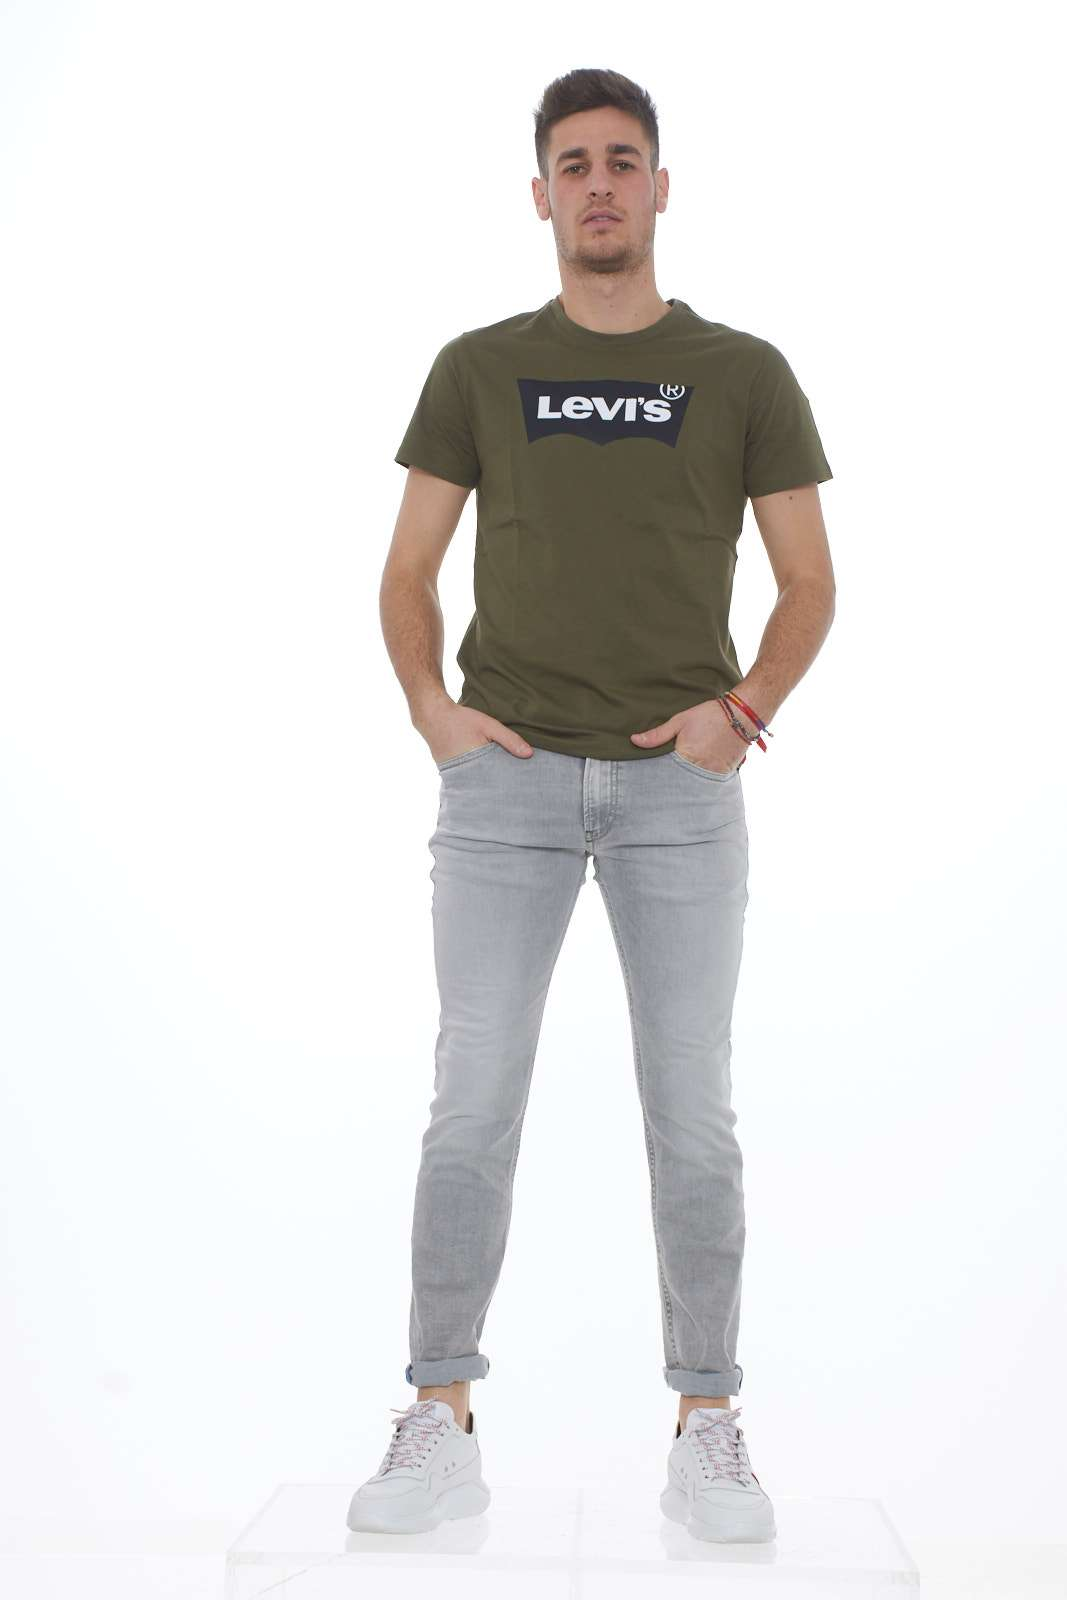 https://www.parmax.com/media/catalog/product/a/i/PE-outlet_parmax-t-shirt-uomo-Levis-22489-D.jpg